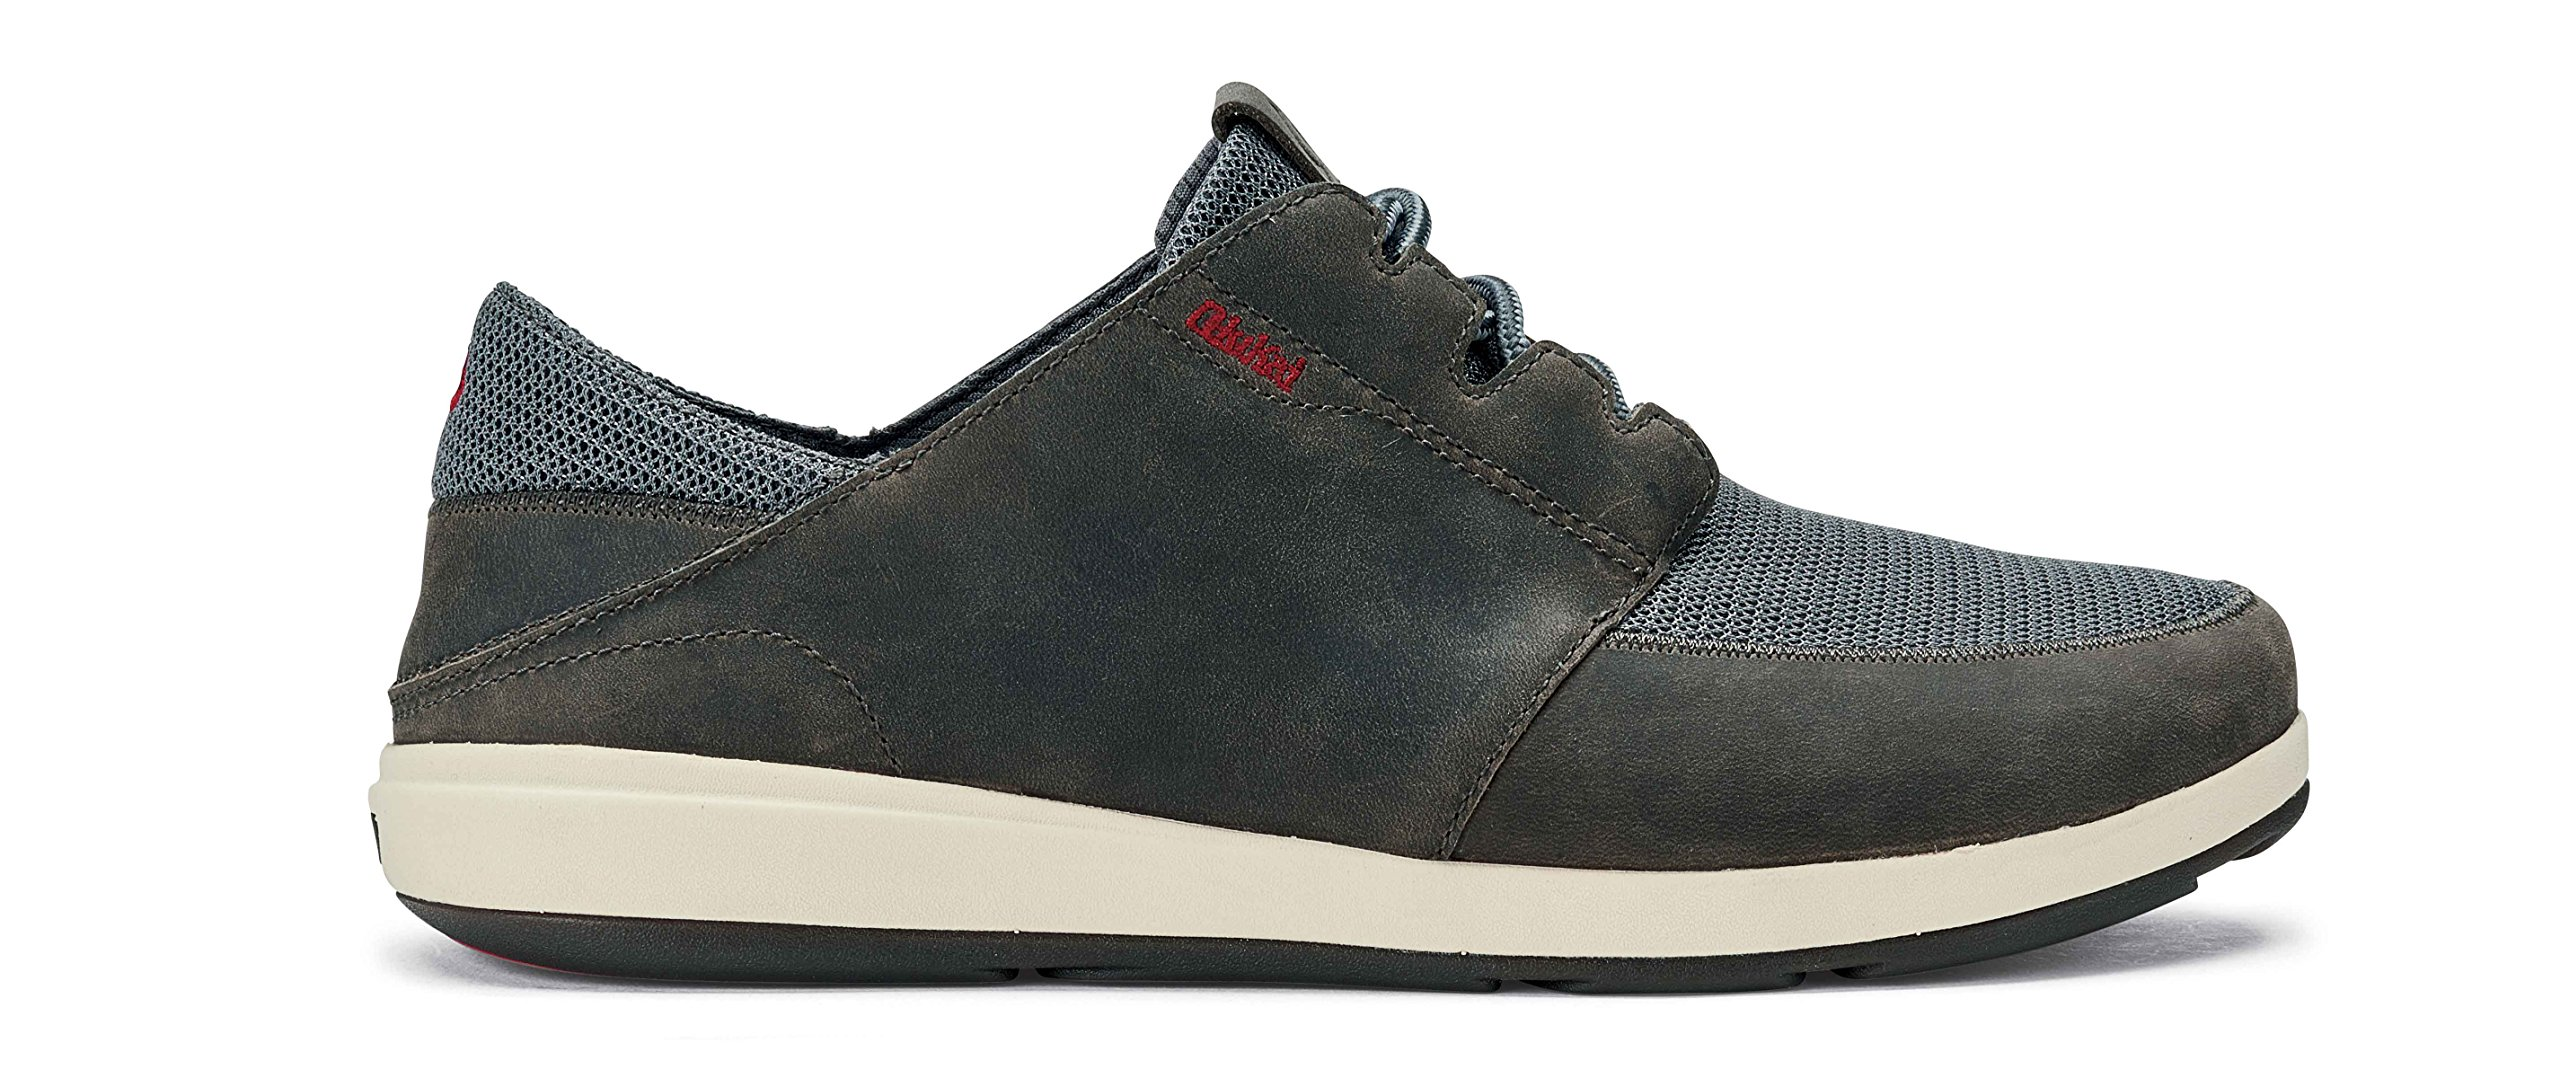 OluKai New Men's Makia Lace Sneaker Charcoal/Charcoal 12